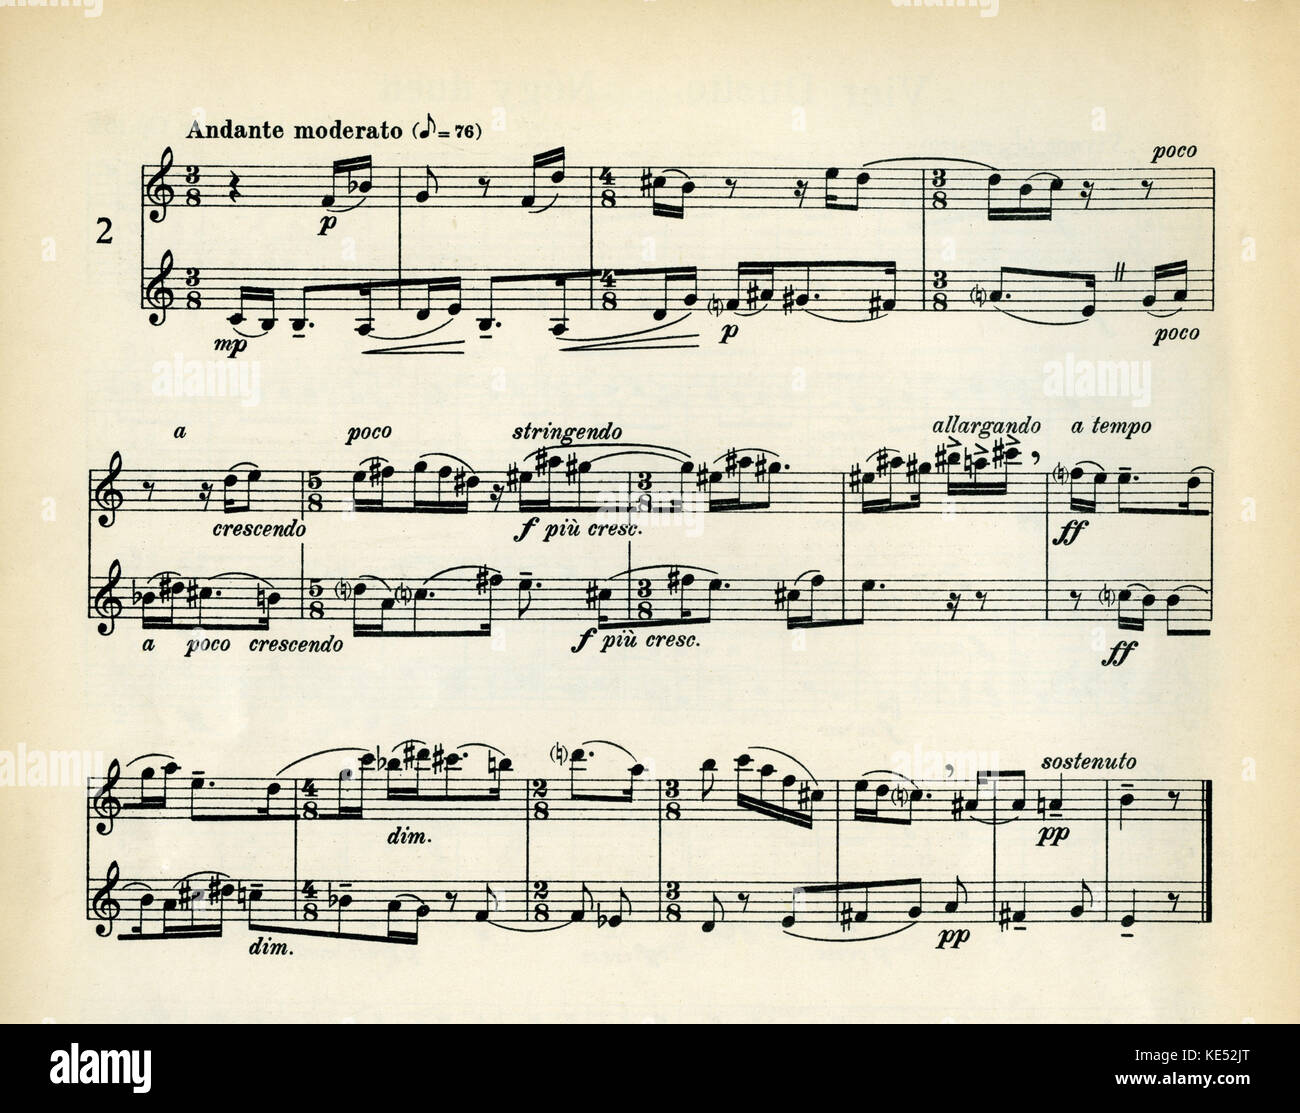 Music notation - Andante moderato. Example of a mixed meter time signature, 5/8 time signature and 4/8 time signature. - Stock Image